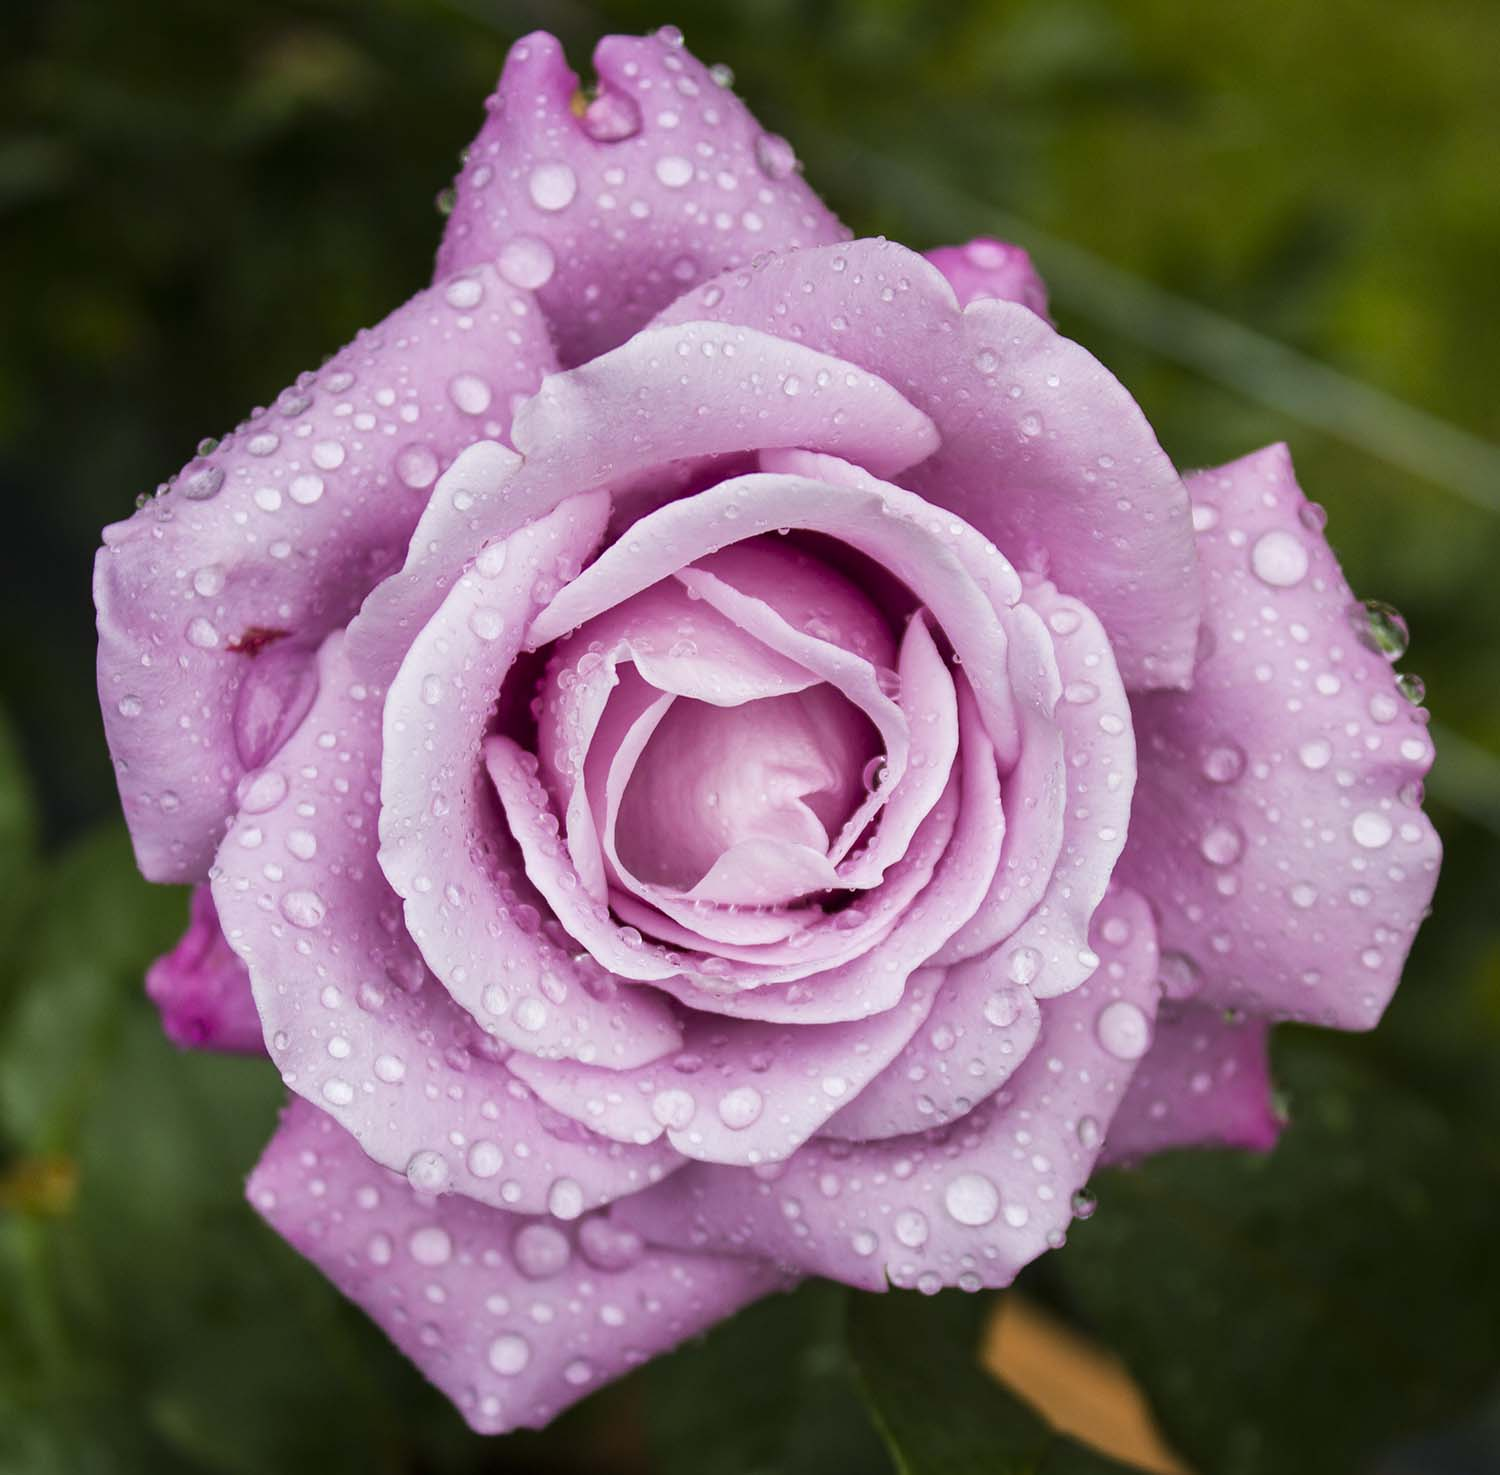 Raindropped rose